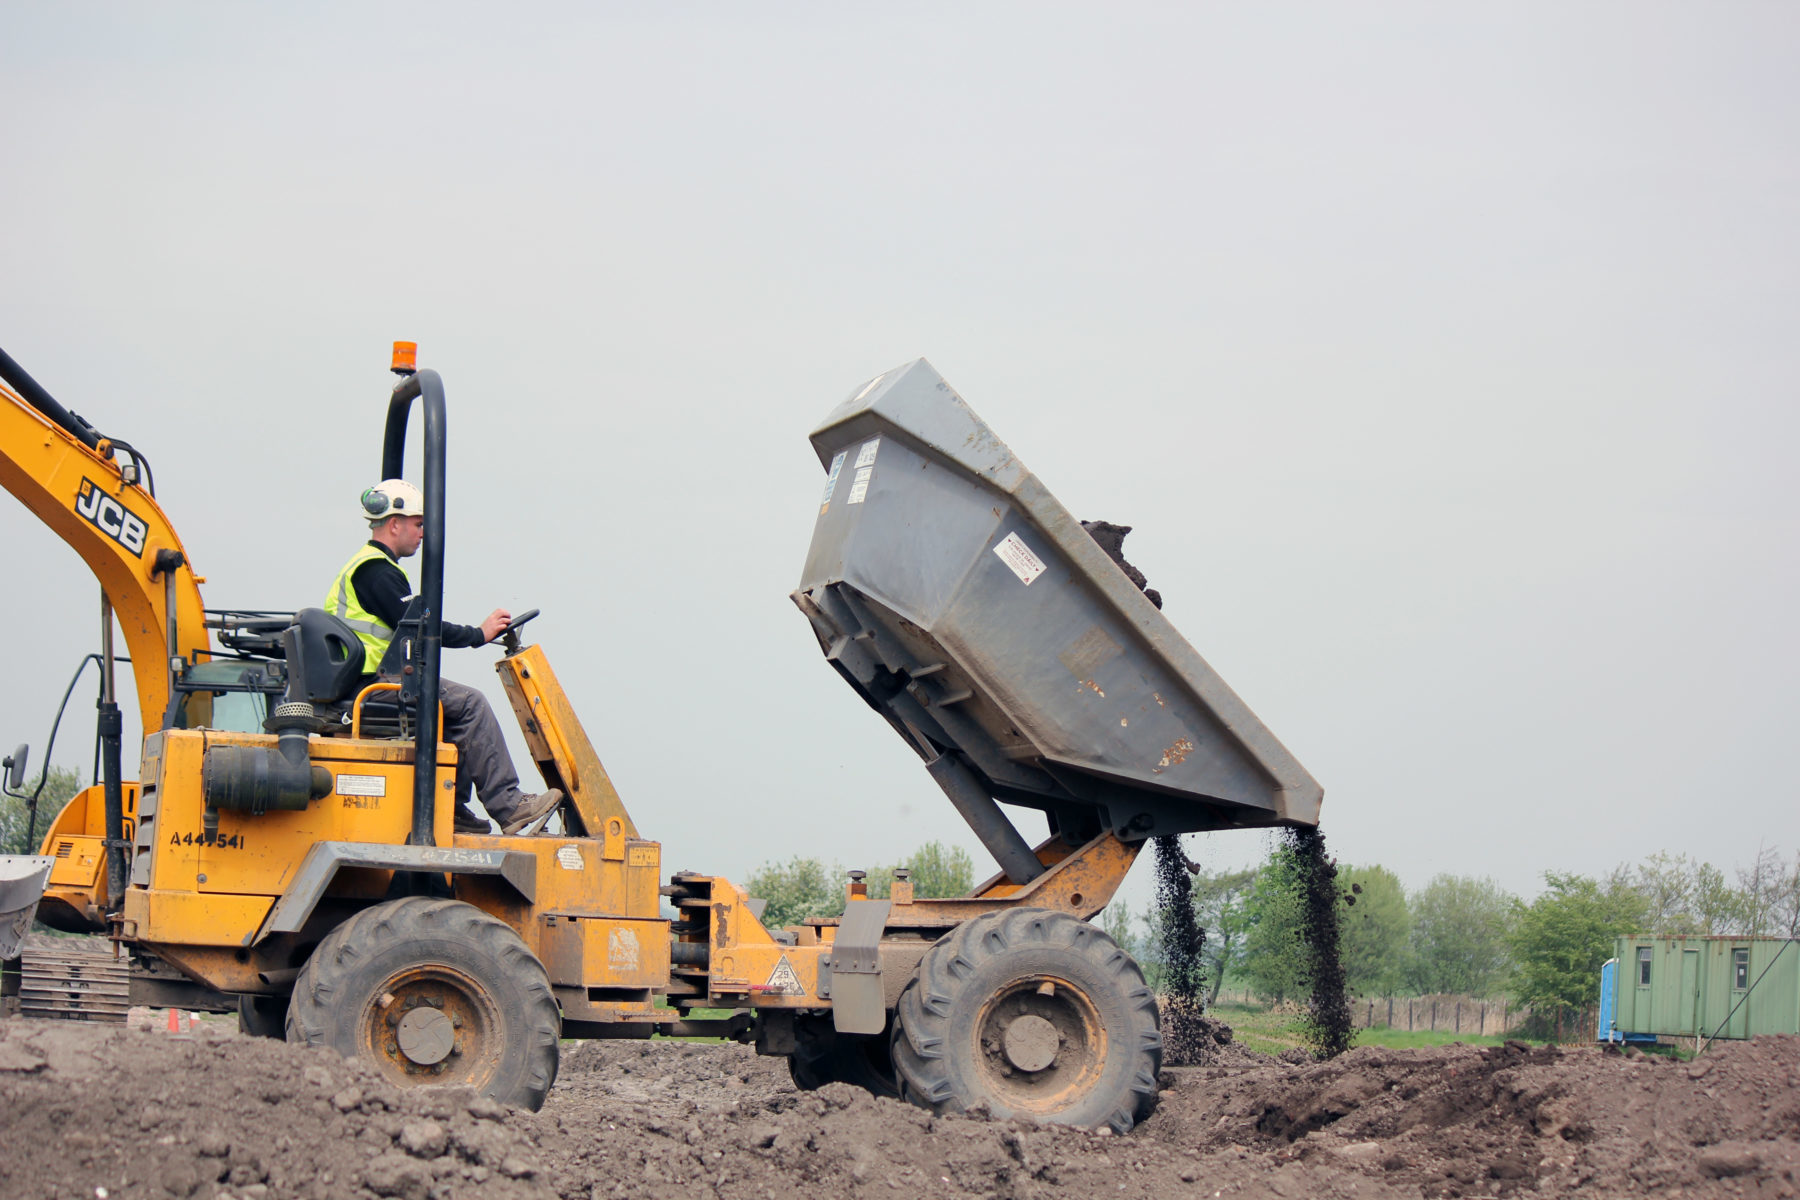 Forward tipping dumper dumping - Citb skills and training fund